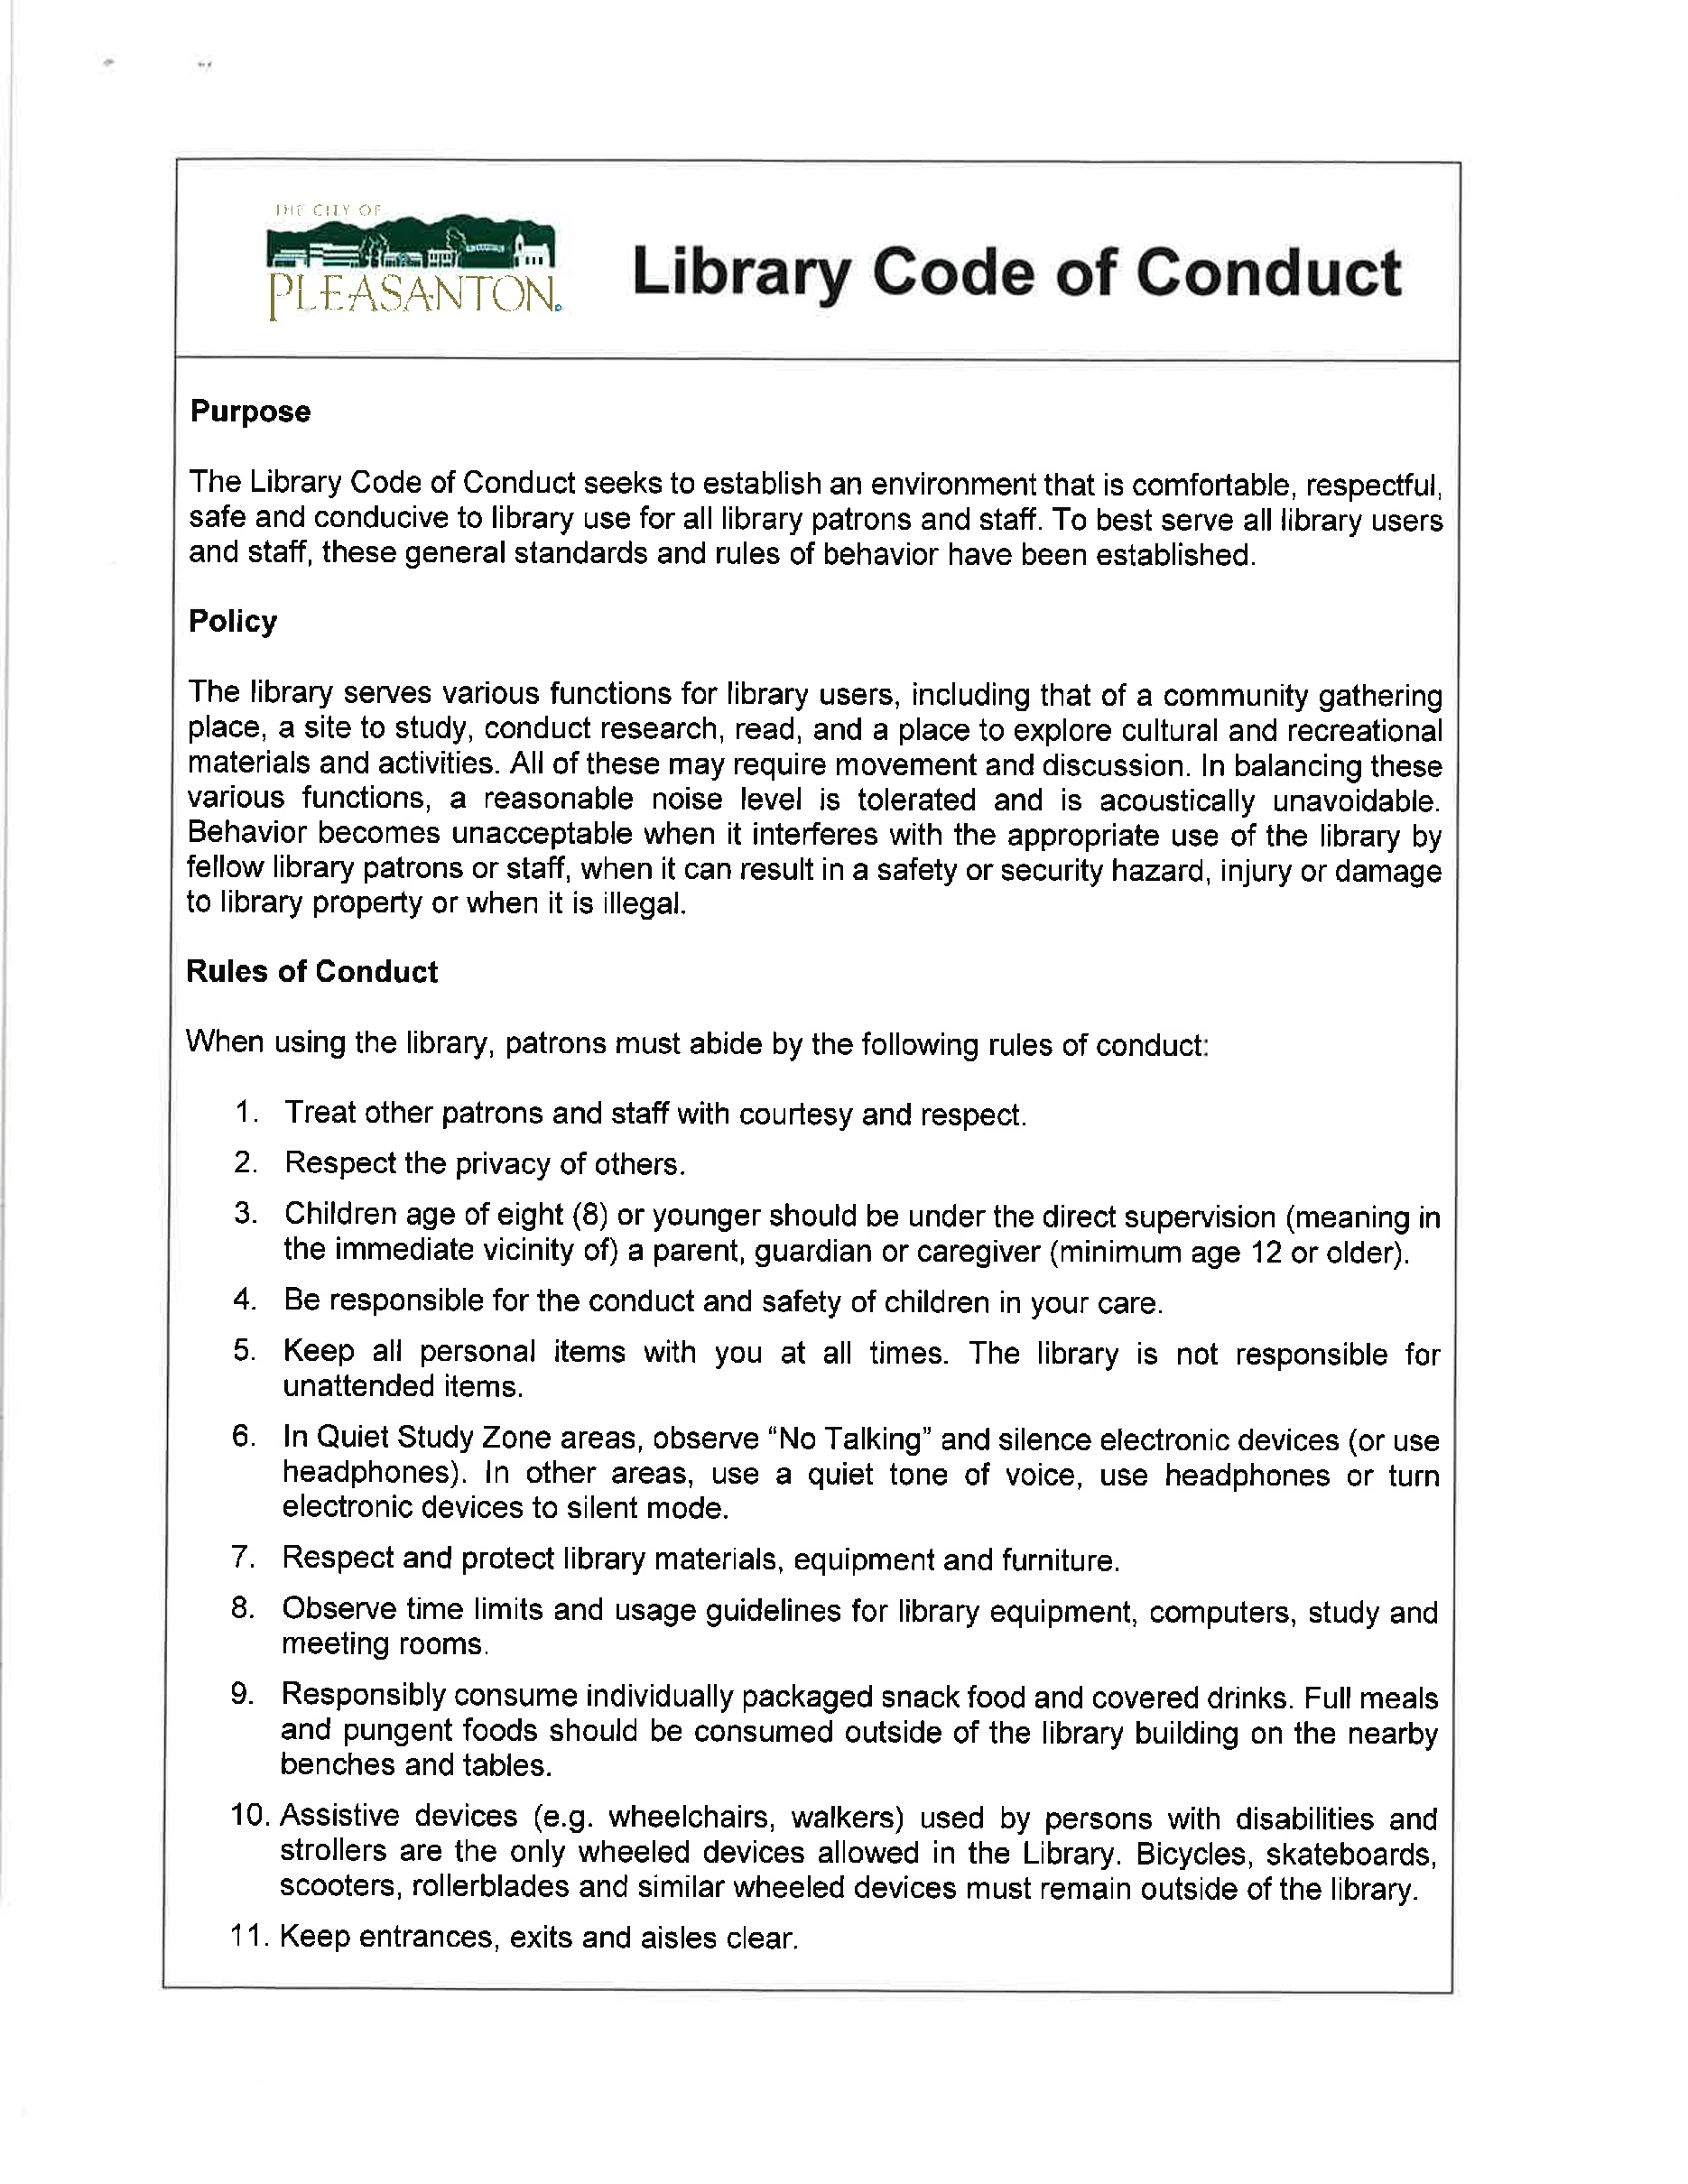 Library_Code_of_Conduct_signed-1.png